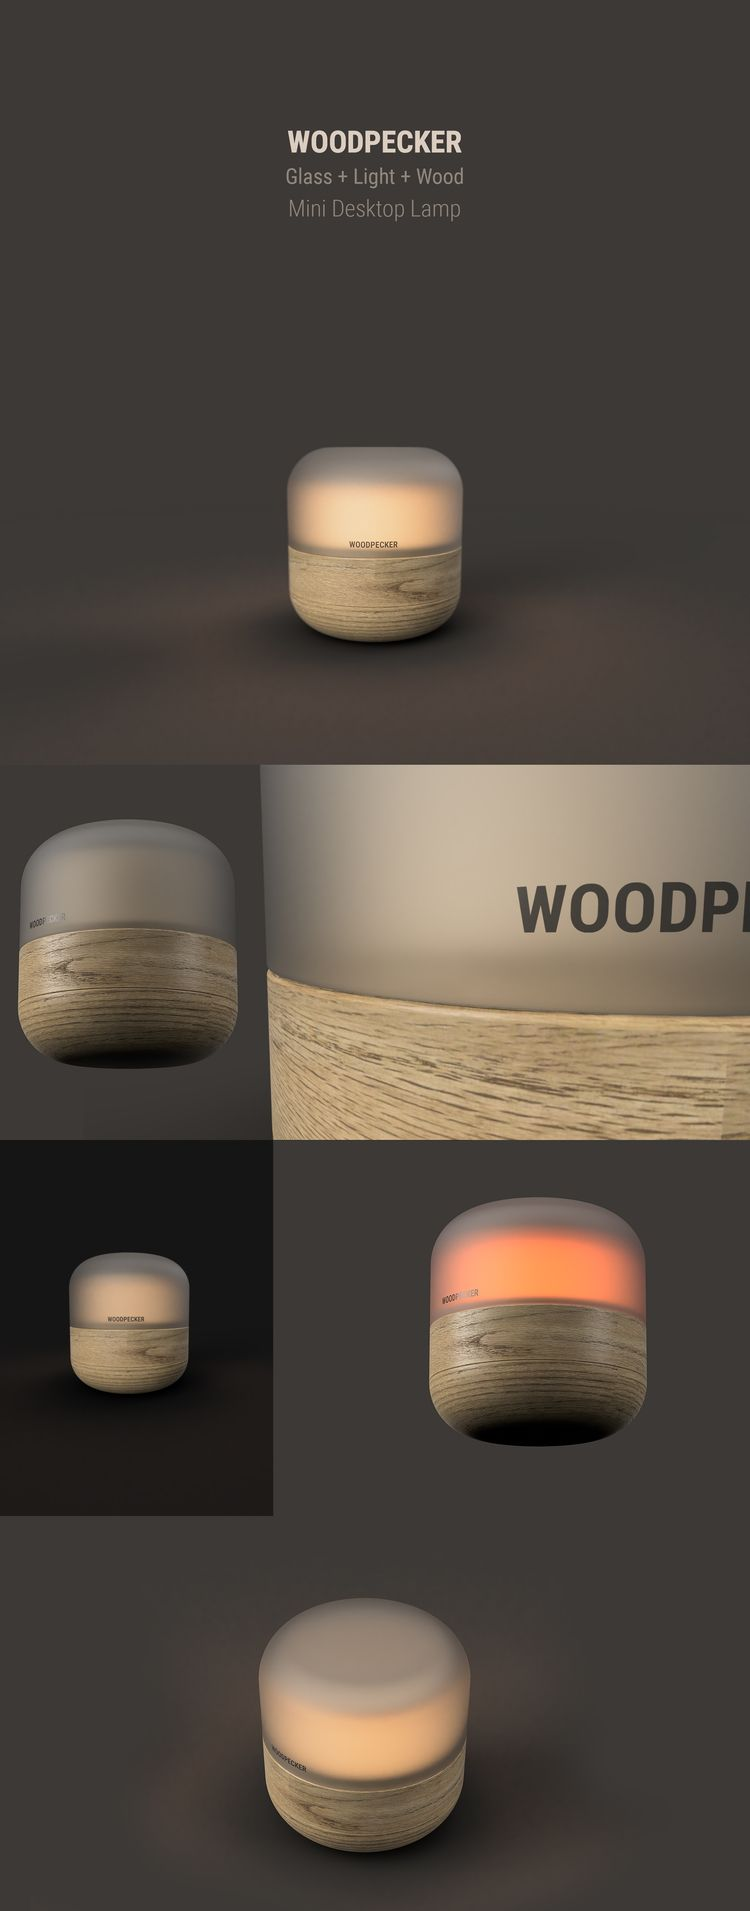 WoodPecker - Mini Desktop Lamp  - emrahserdaroglu | ello